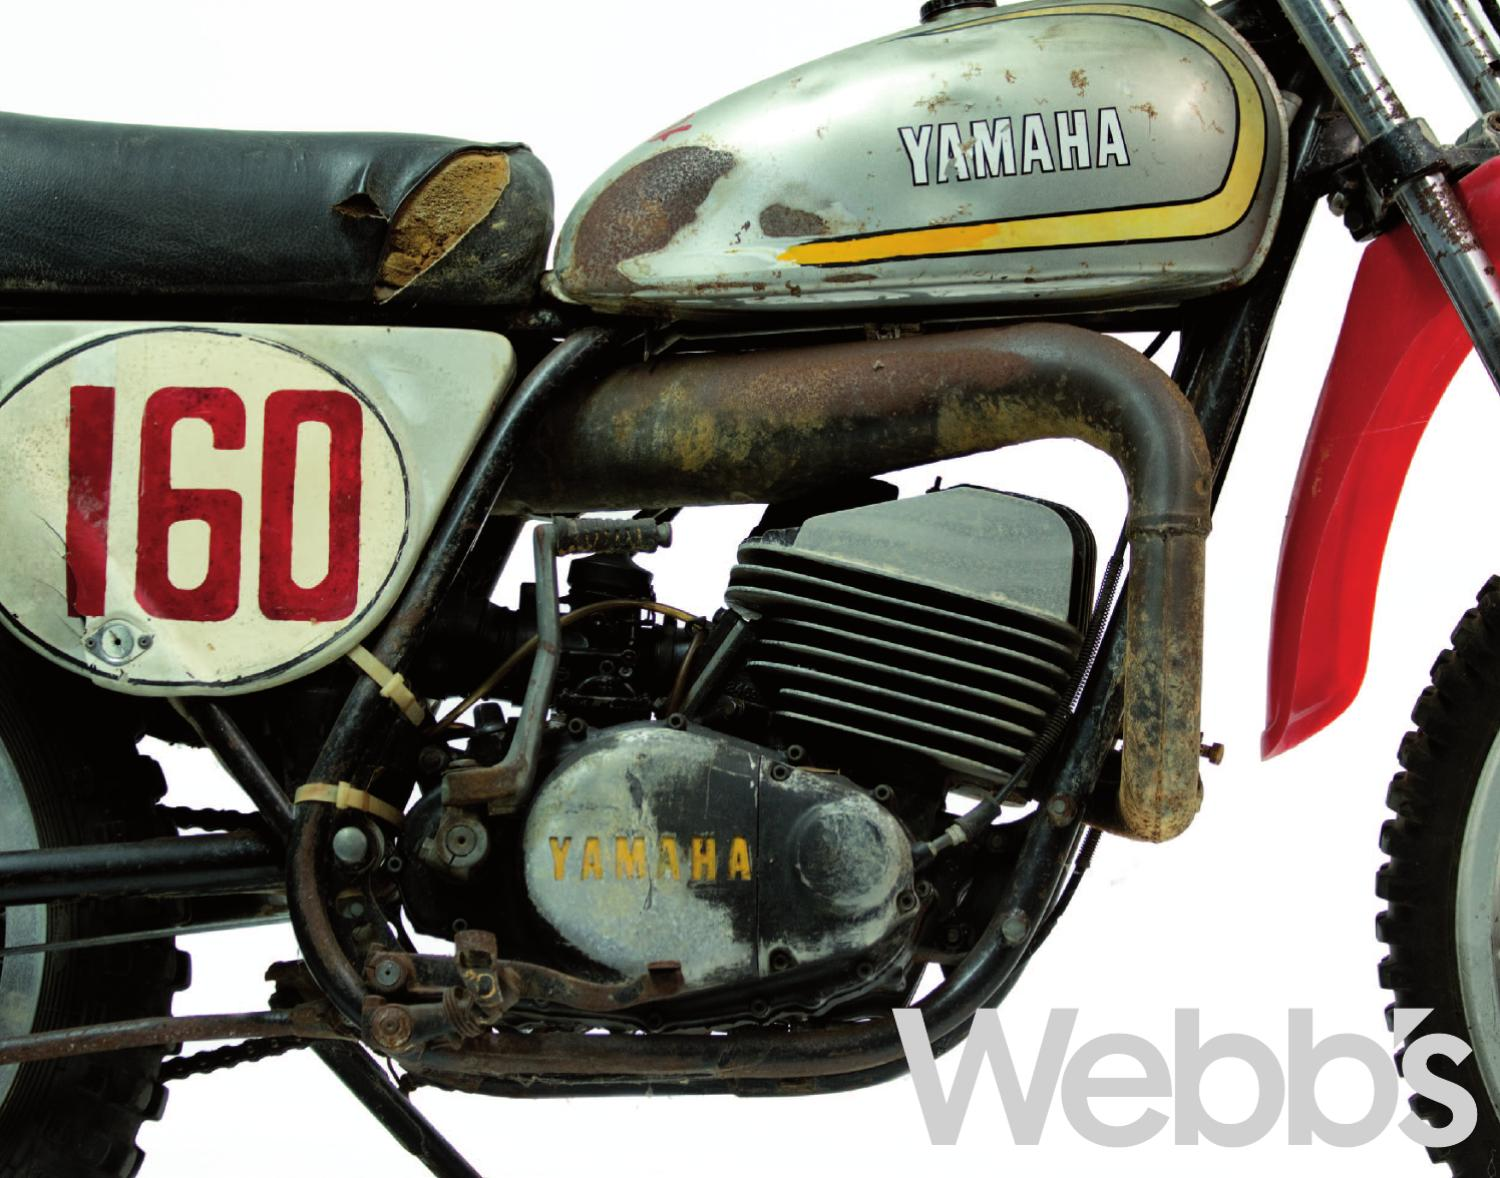 Webb's Classic Motorcycles and Cars of the Day by Webb's